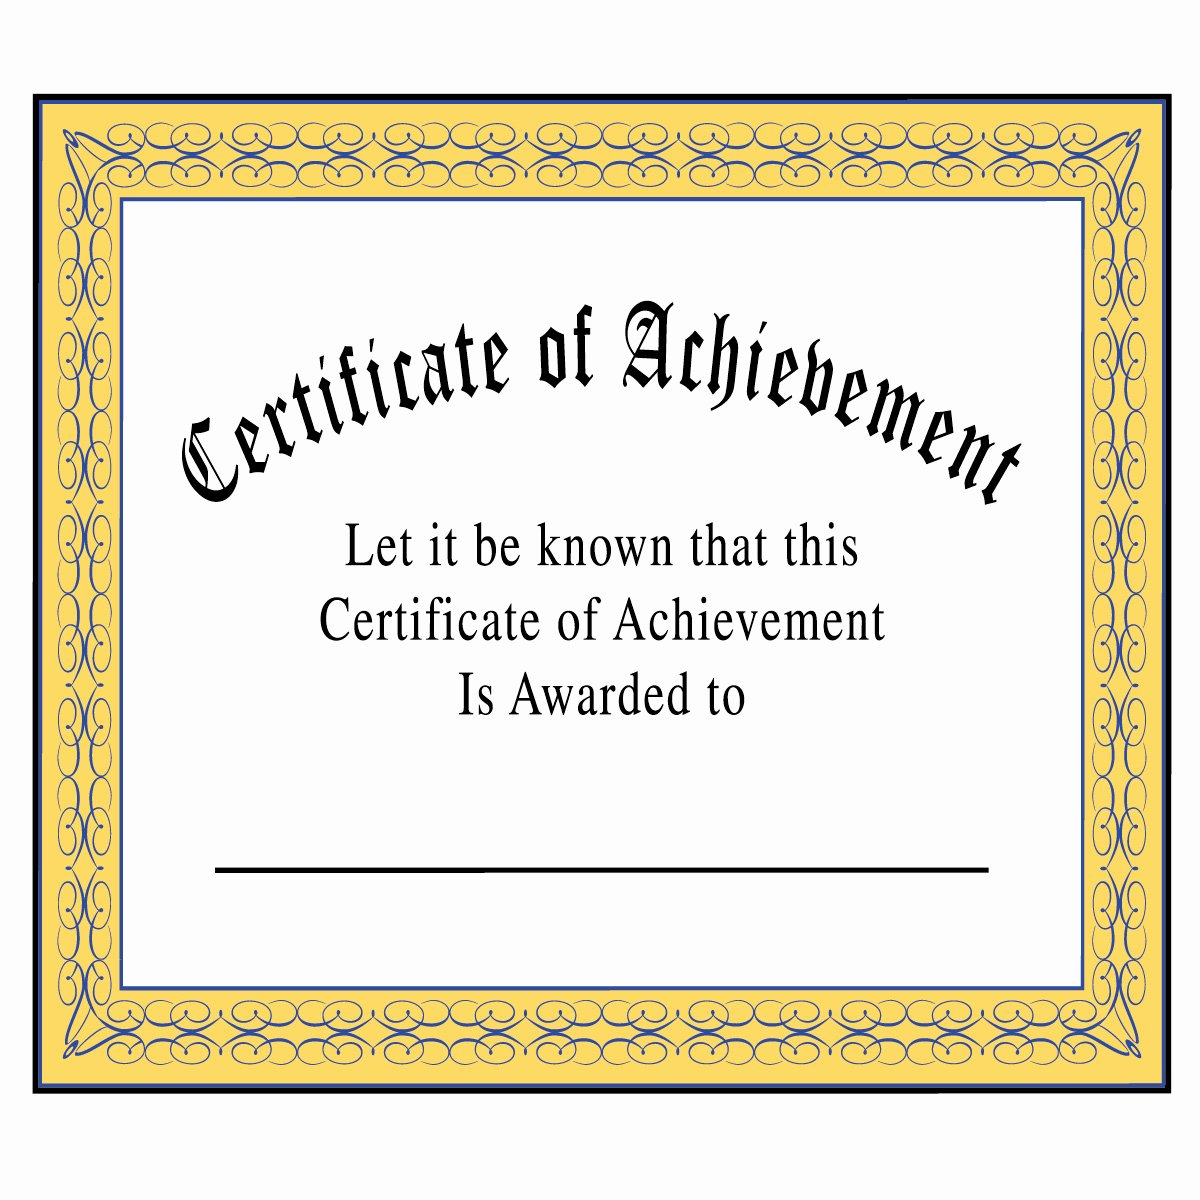 Award Certificate Clip Art Best Of Award Certificate Clipart Png and Cliparts for Free